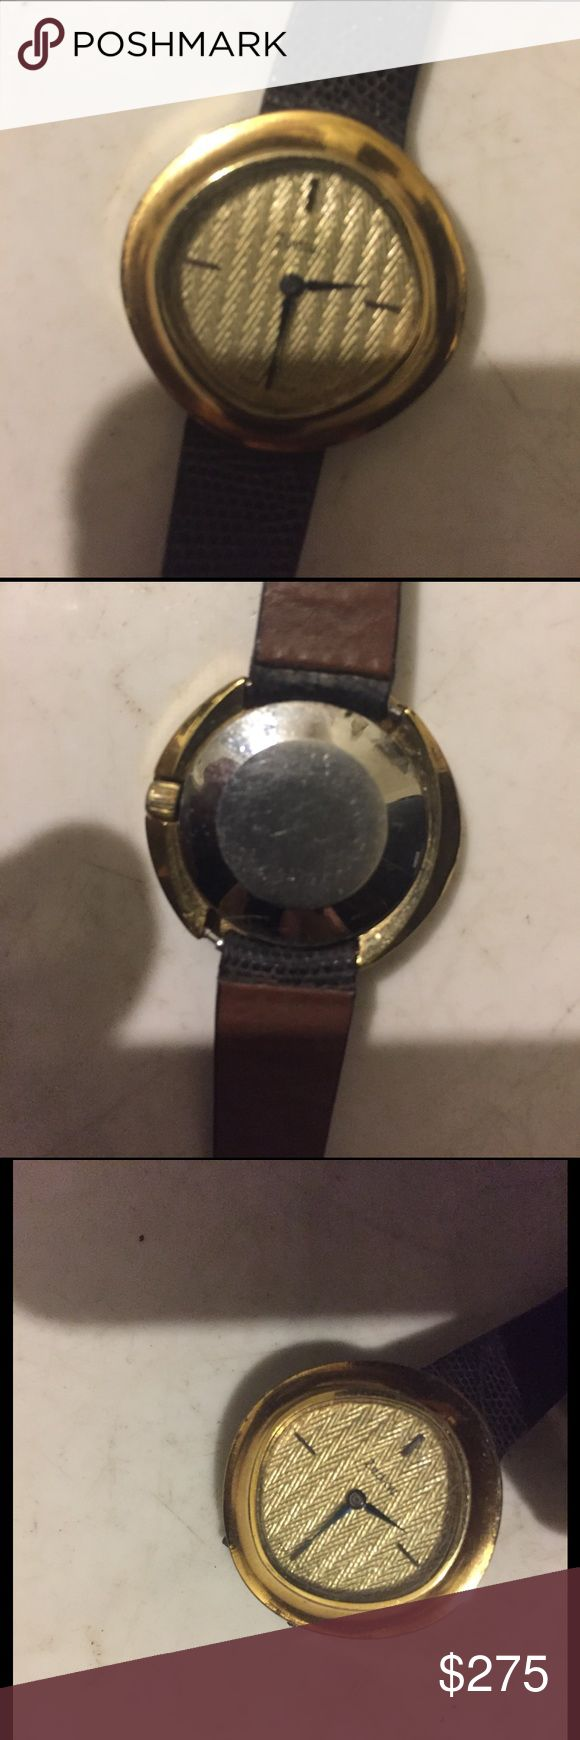 Vintage zodiac watch automatic very rare Gold plate watch zodiac Accessories Watches